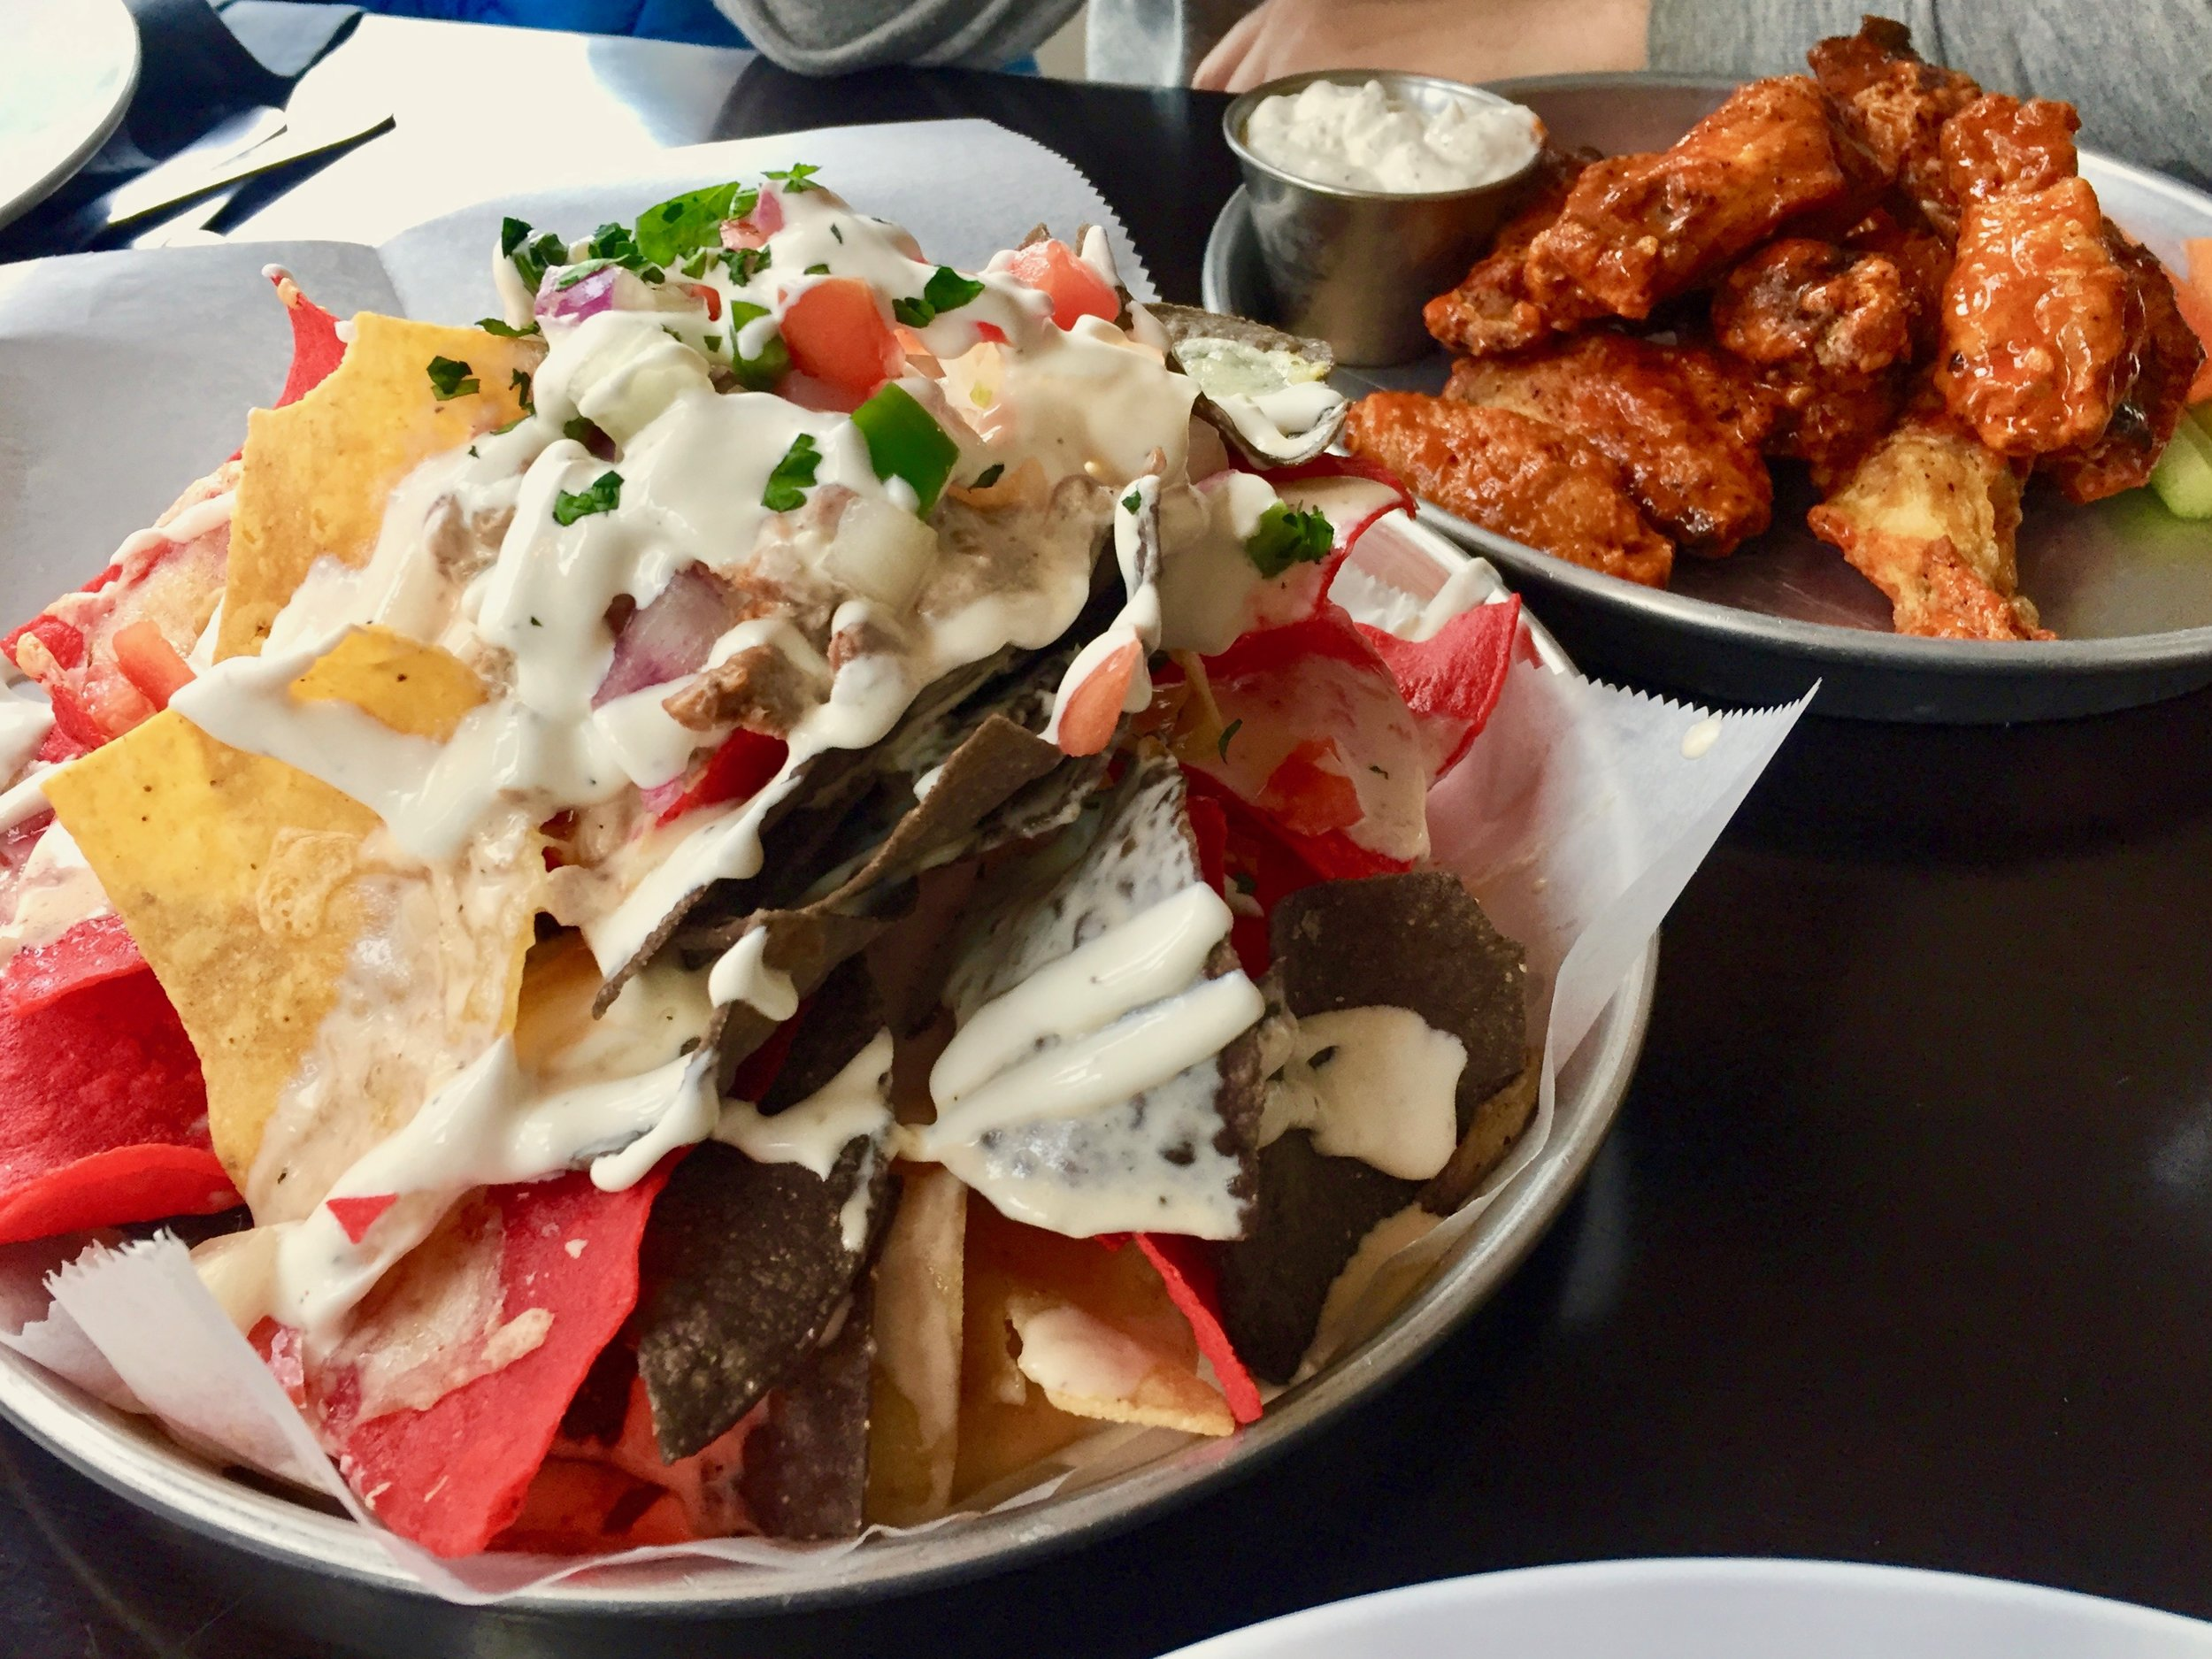 Nachos and wings at Crossroads Brewing in Athens, NY